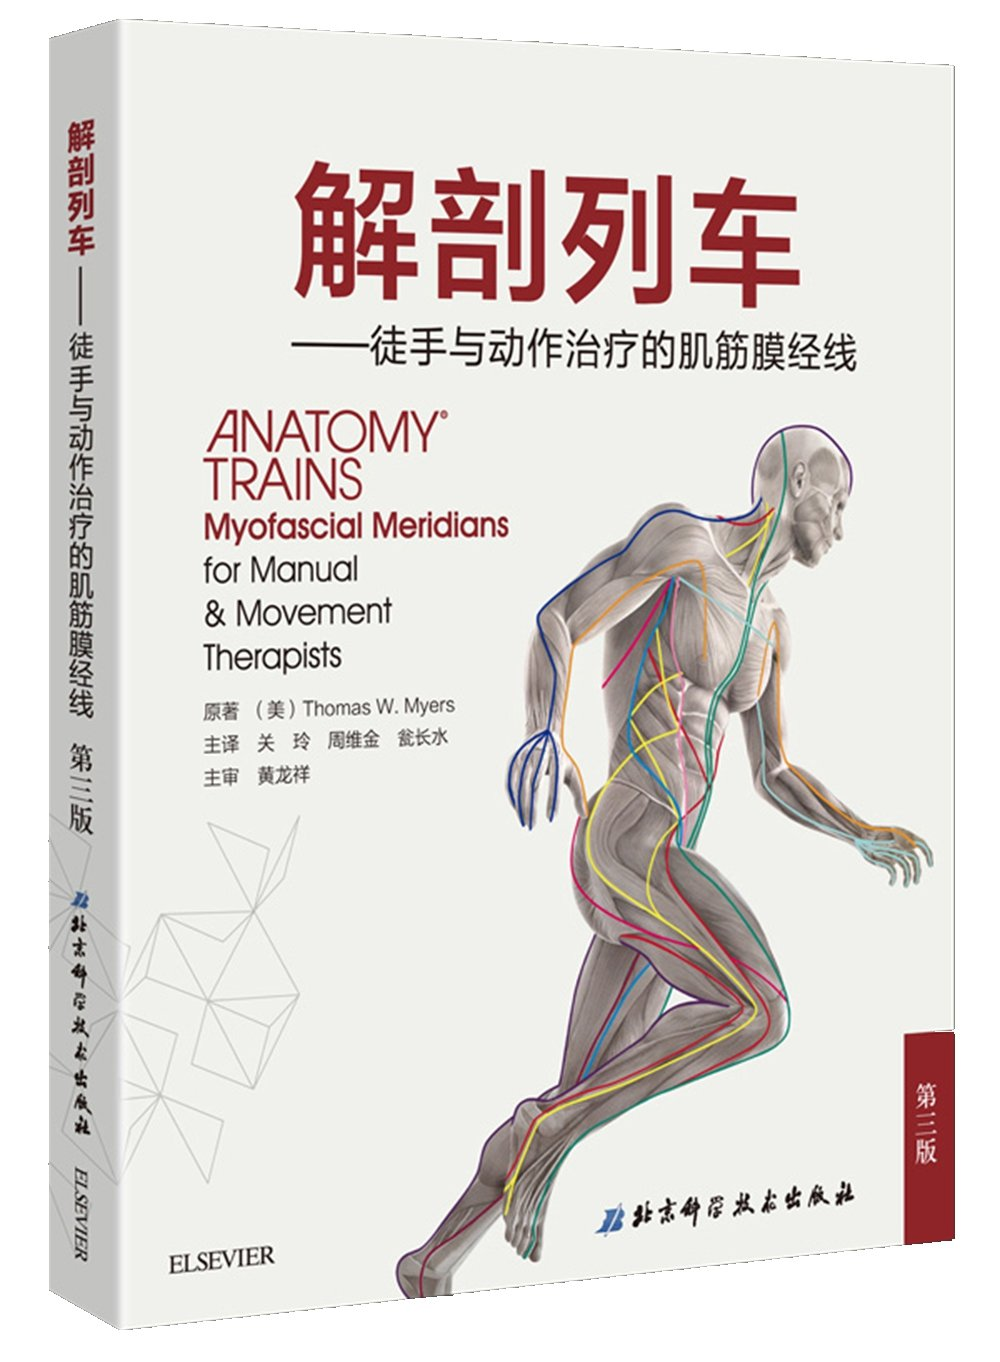 Fine Anatomy Trains Posters Illustration - Human Anatomy Images ...